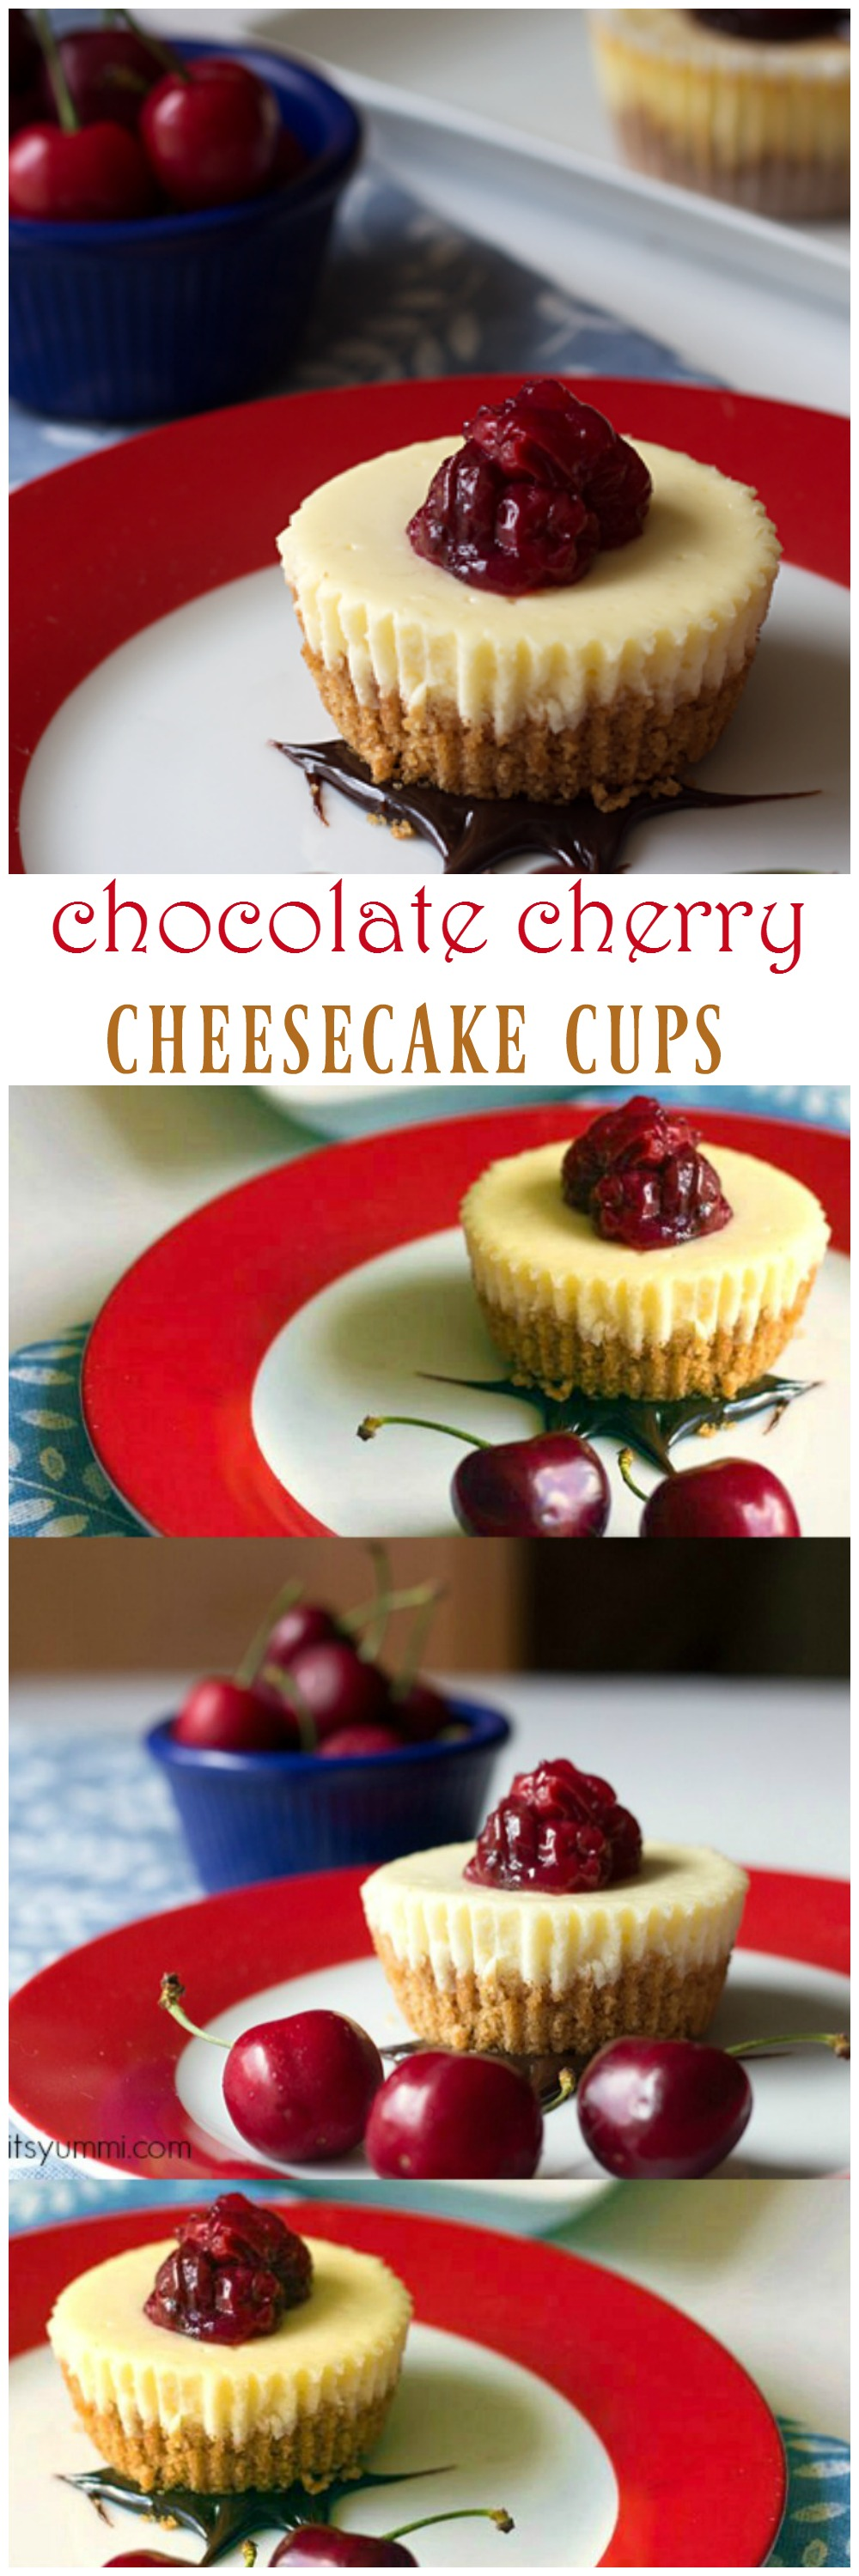 Chocolate Cherry Single Serving Cheesecake Recipe - Perfect portion control for dessert!